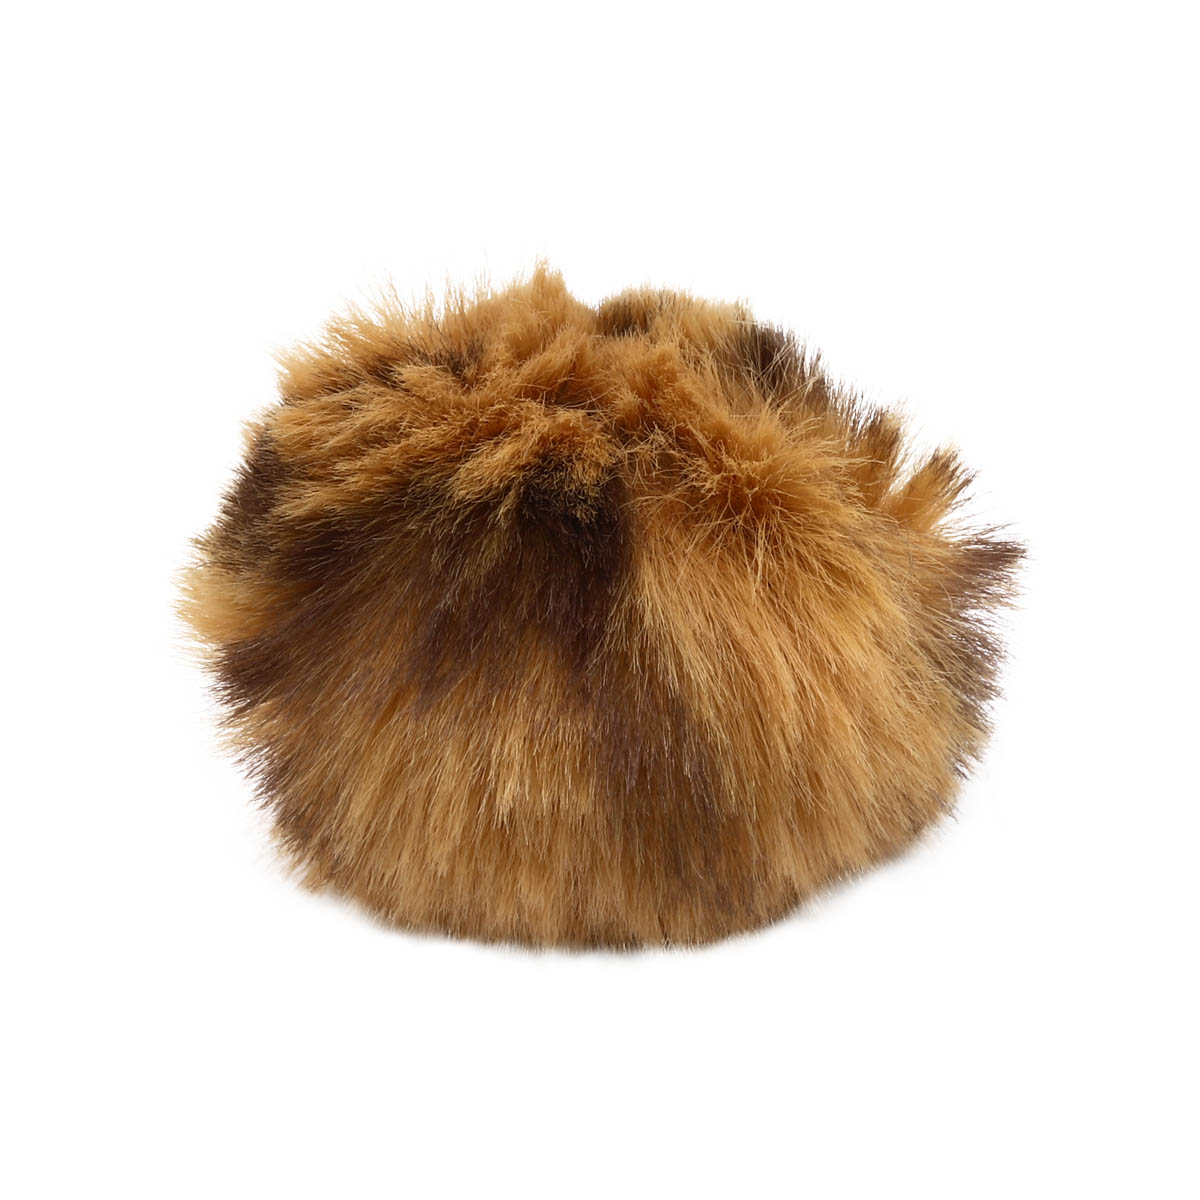 Ar528 Pompon Artificial Fur, Leopard, 5 Cm 2 Pcs/pack (light Brown)